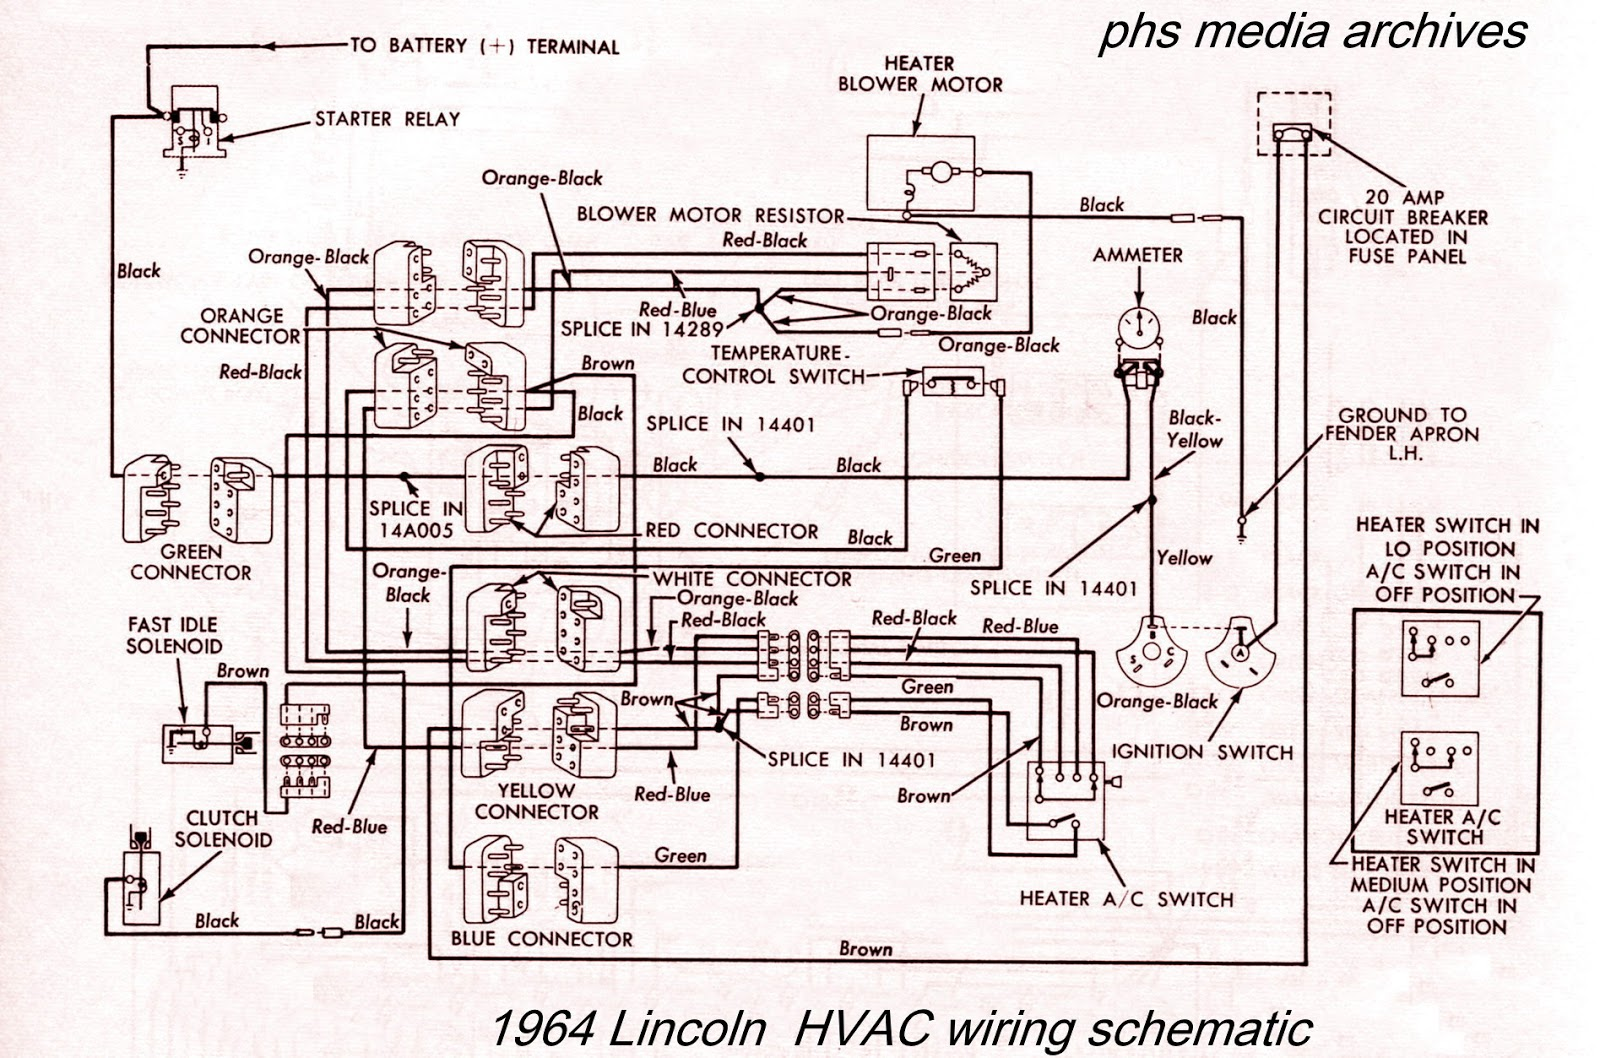 linc%2B%2B%2Bf242 tech series 1960 1964 lincoln wiring diagrams phscollectorcarworld lincoln auto greaser wiring diagram at bayanpartner.co